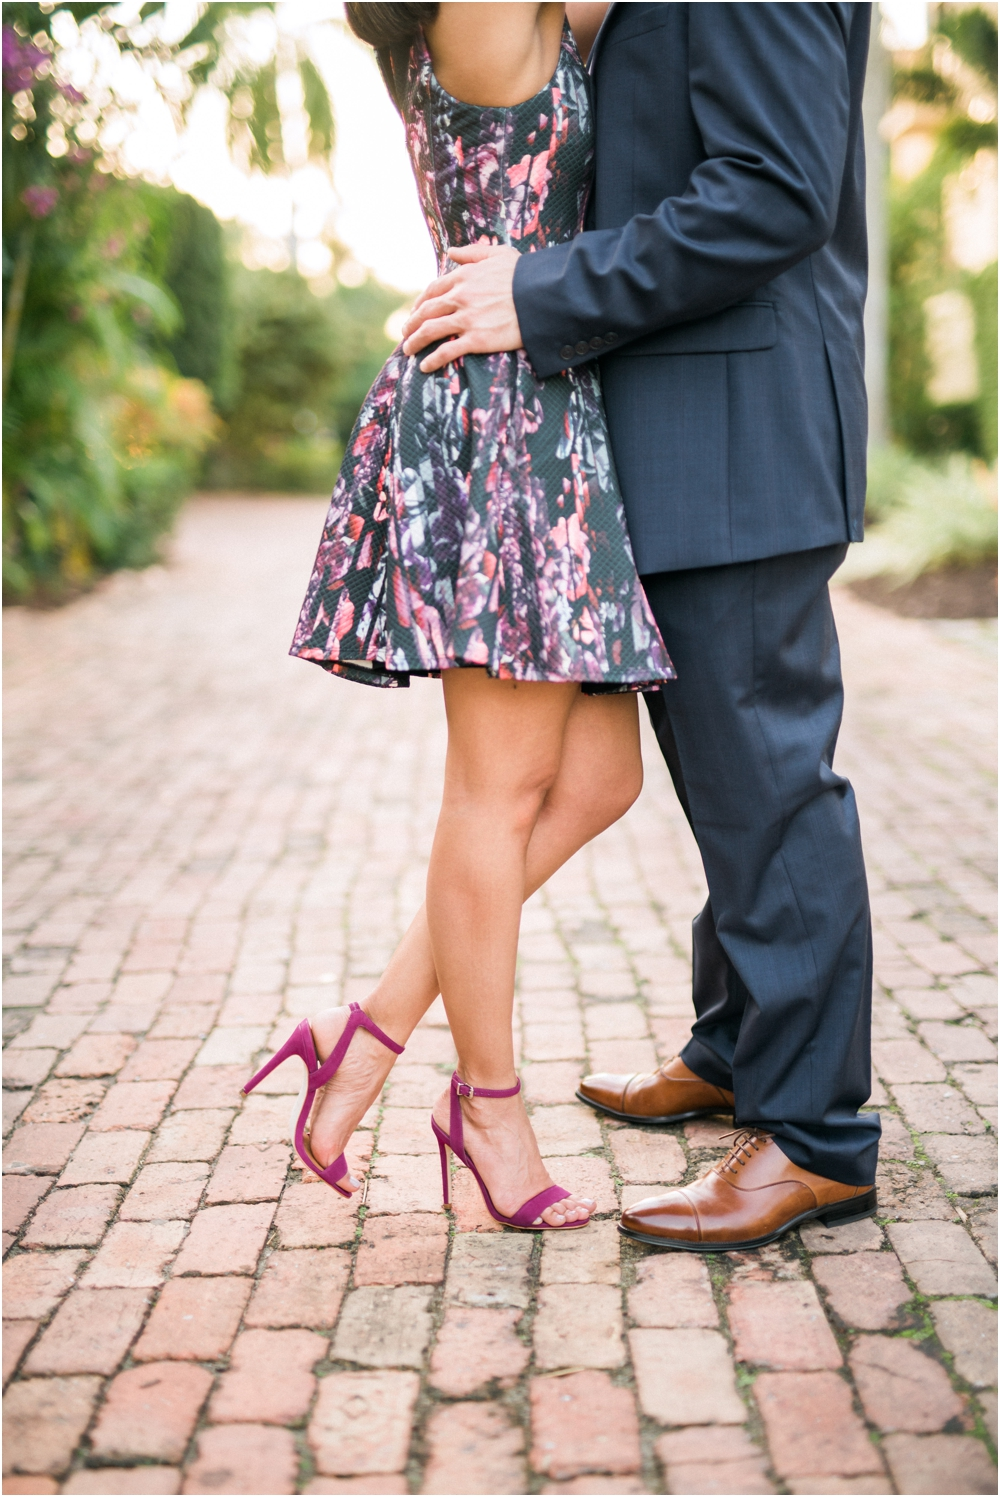 Naples_Wedding_Photographer_Florida_Engagement_Session_1213.jpg